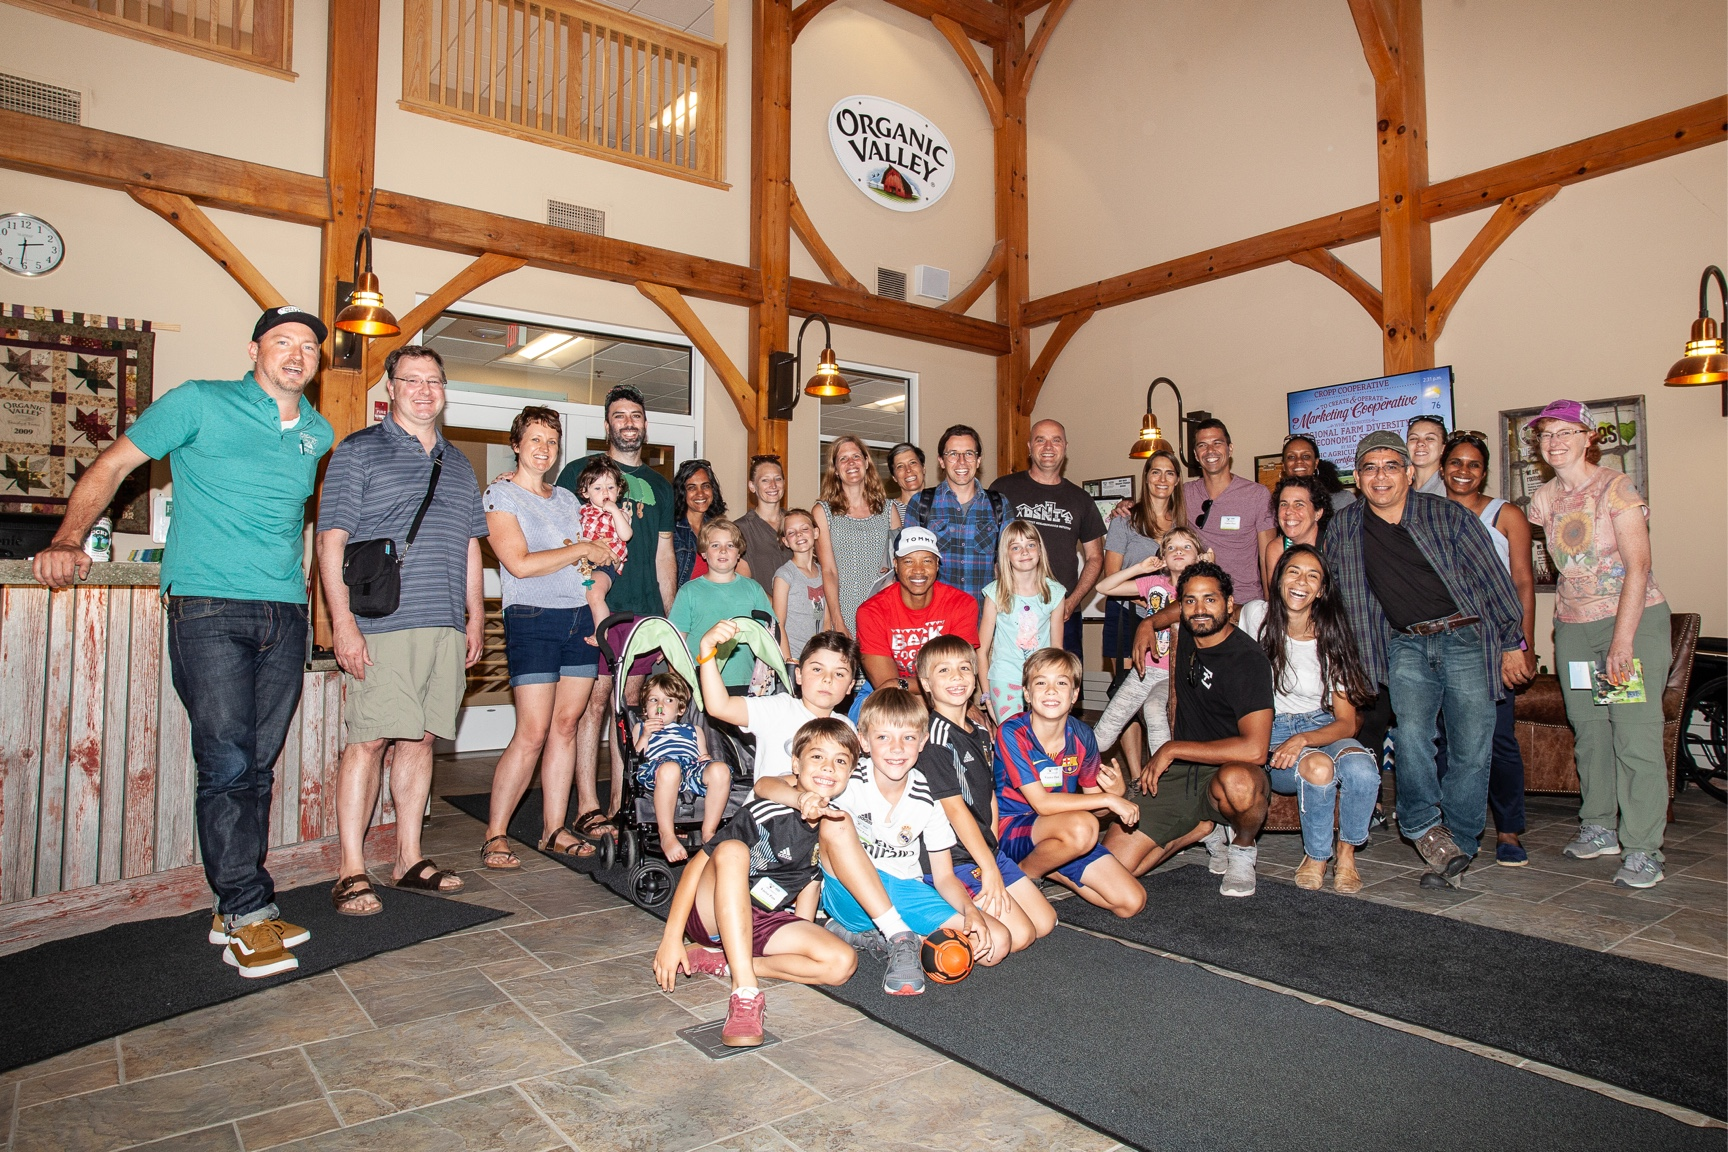 A large group of men, women and children pose in the Organic Valley office building lobby.